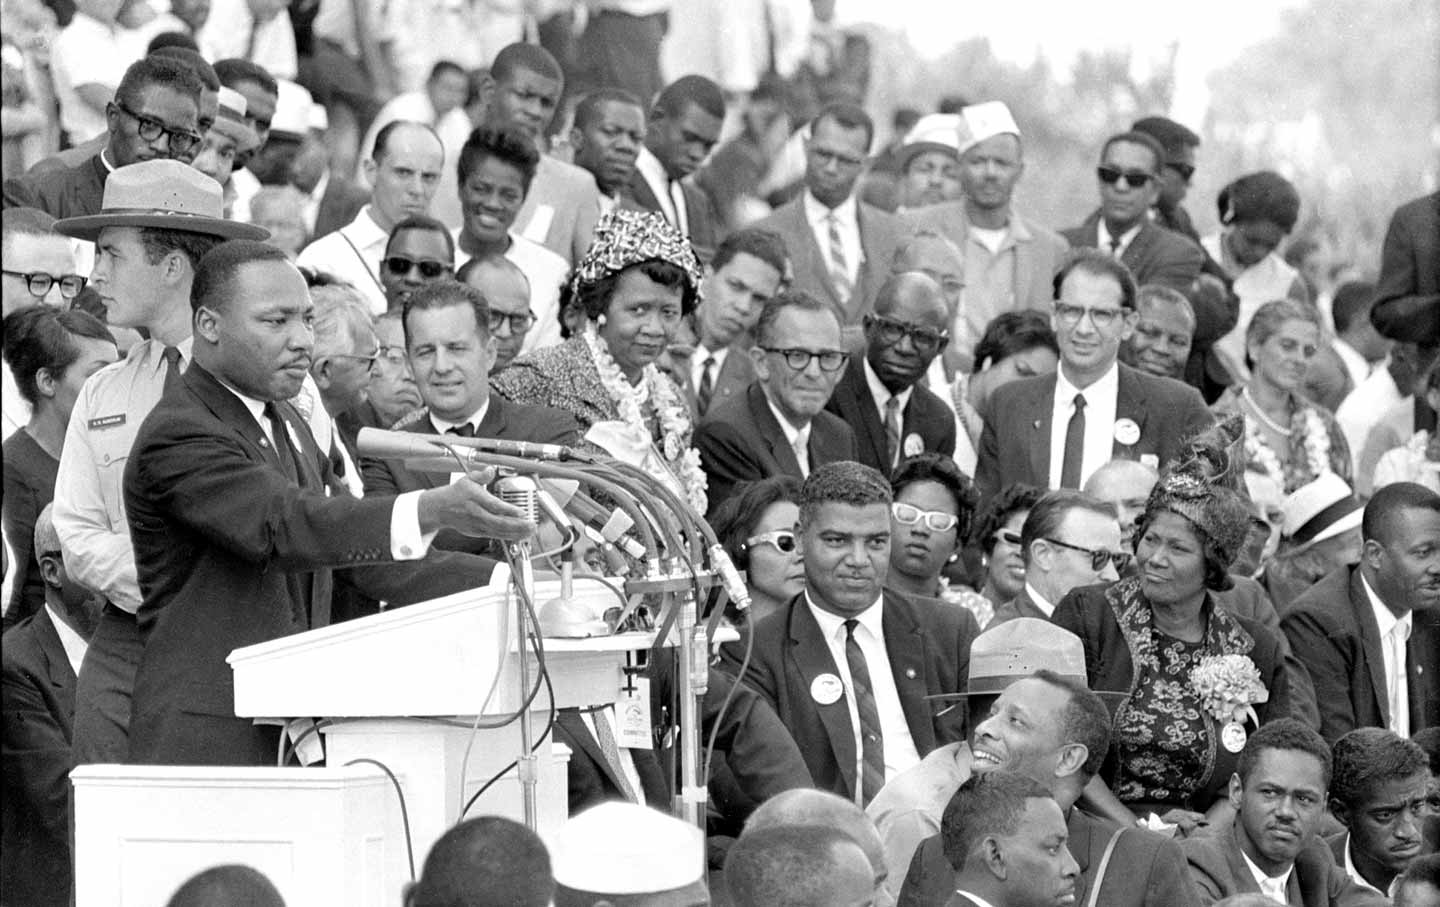 MLK Speaks During March on Washington